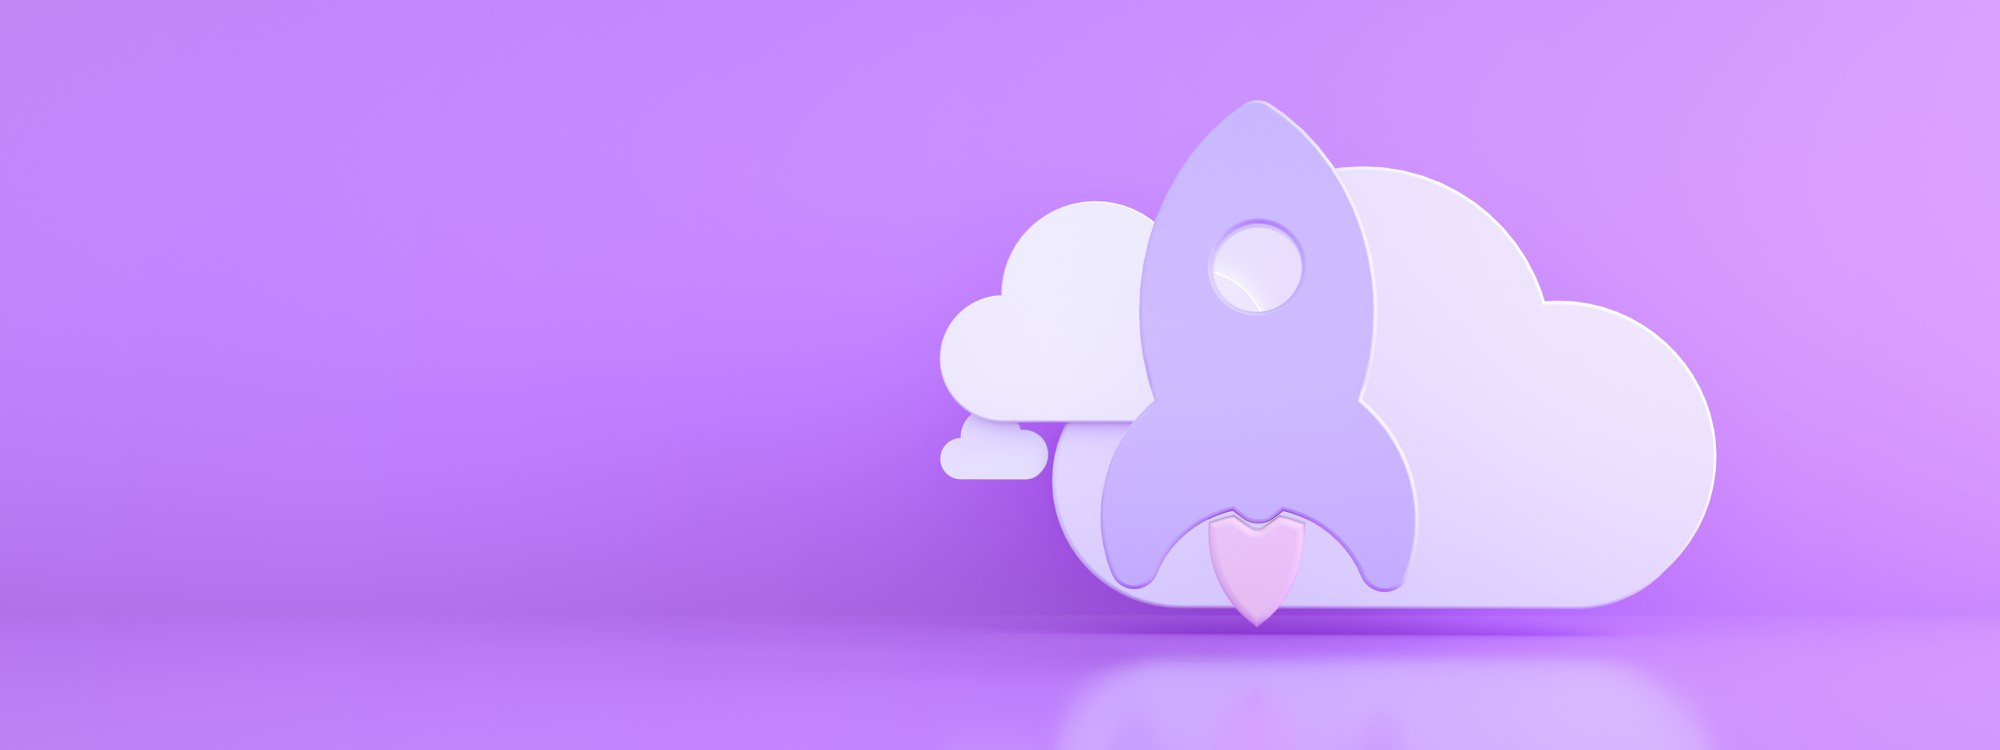 rocket with cloud purple background